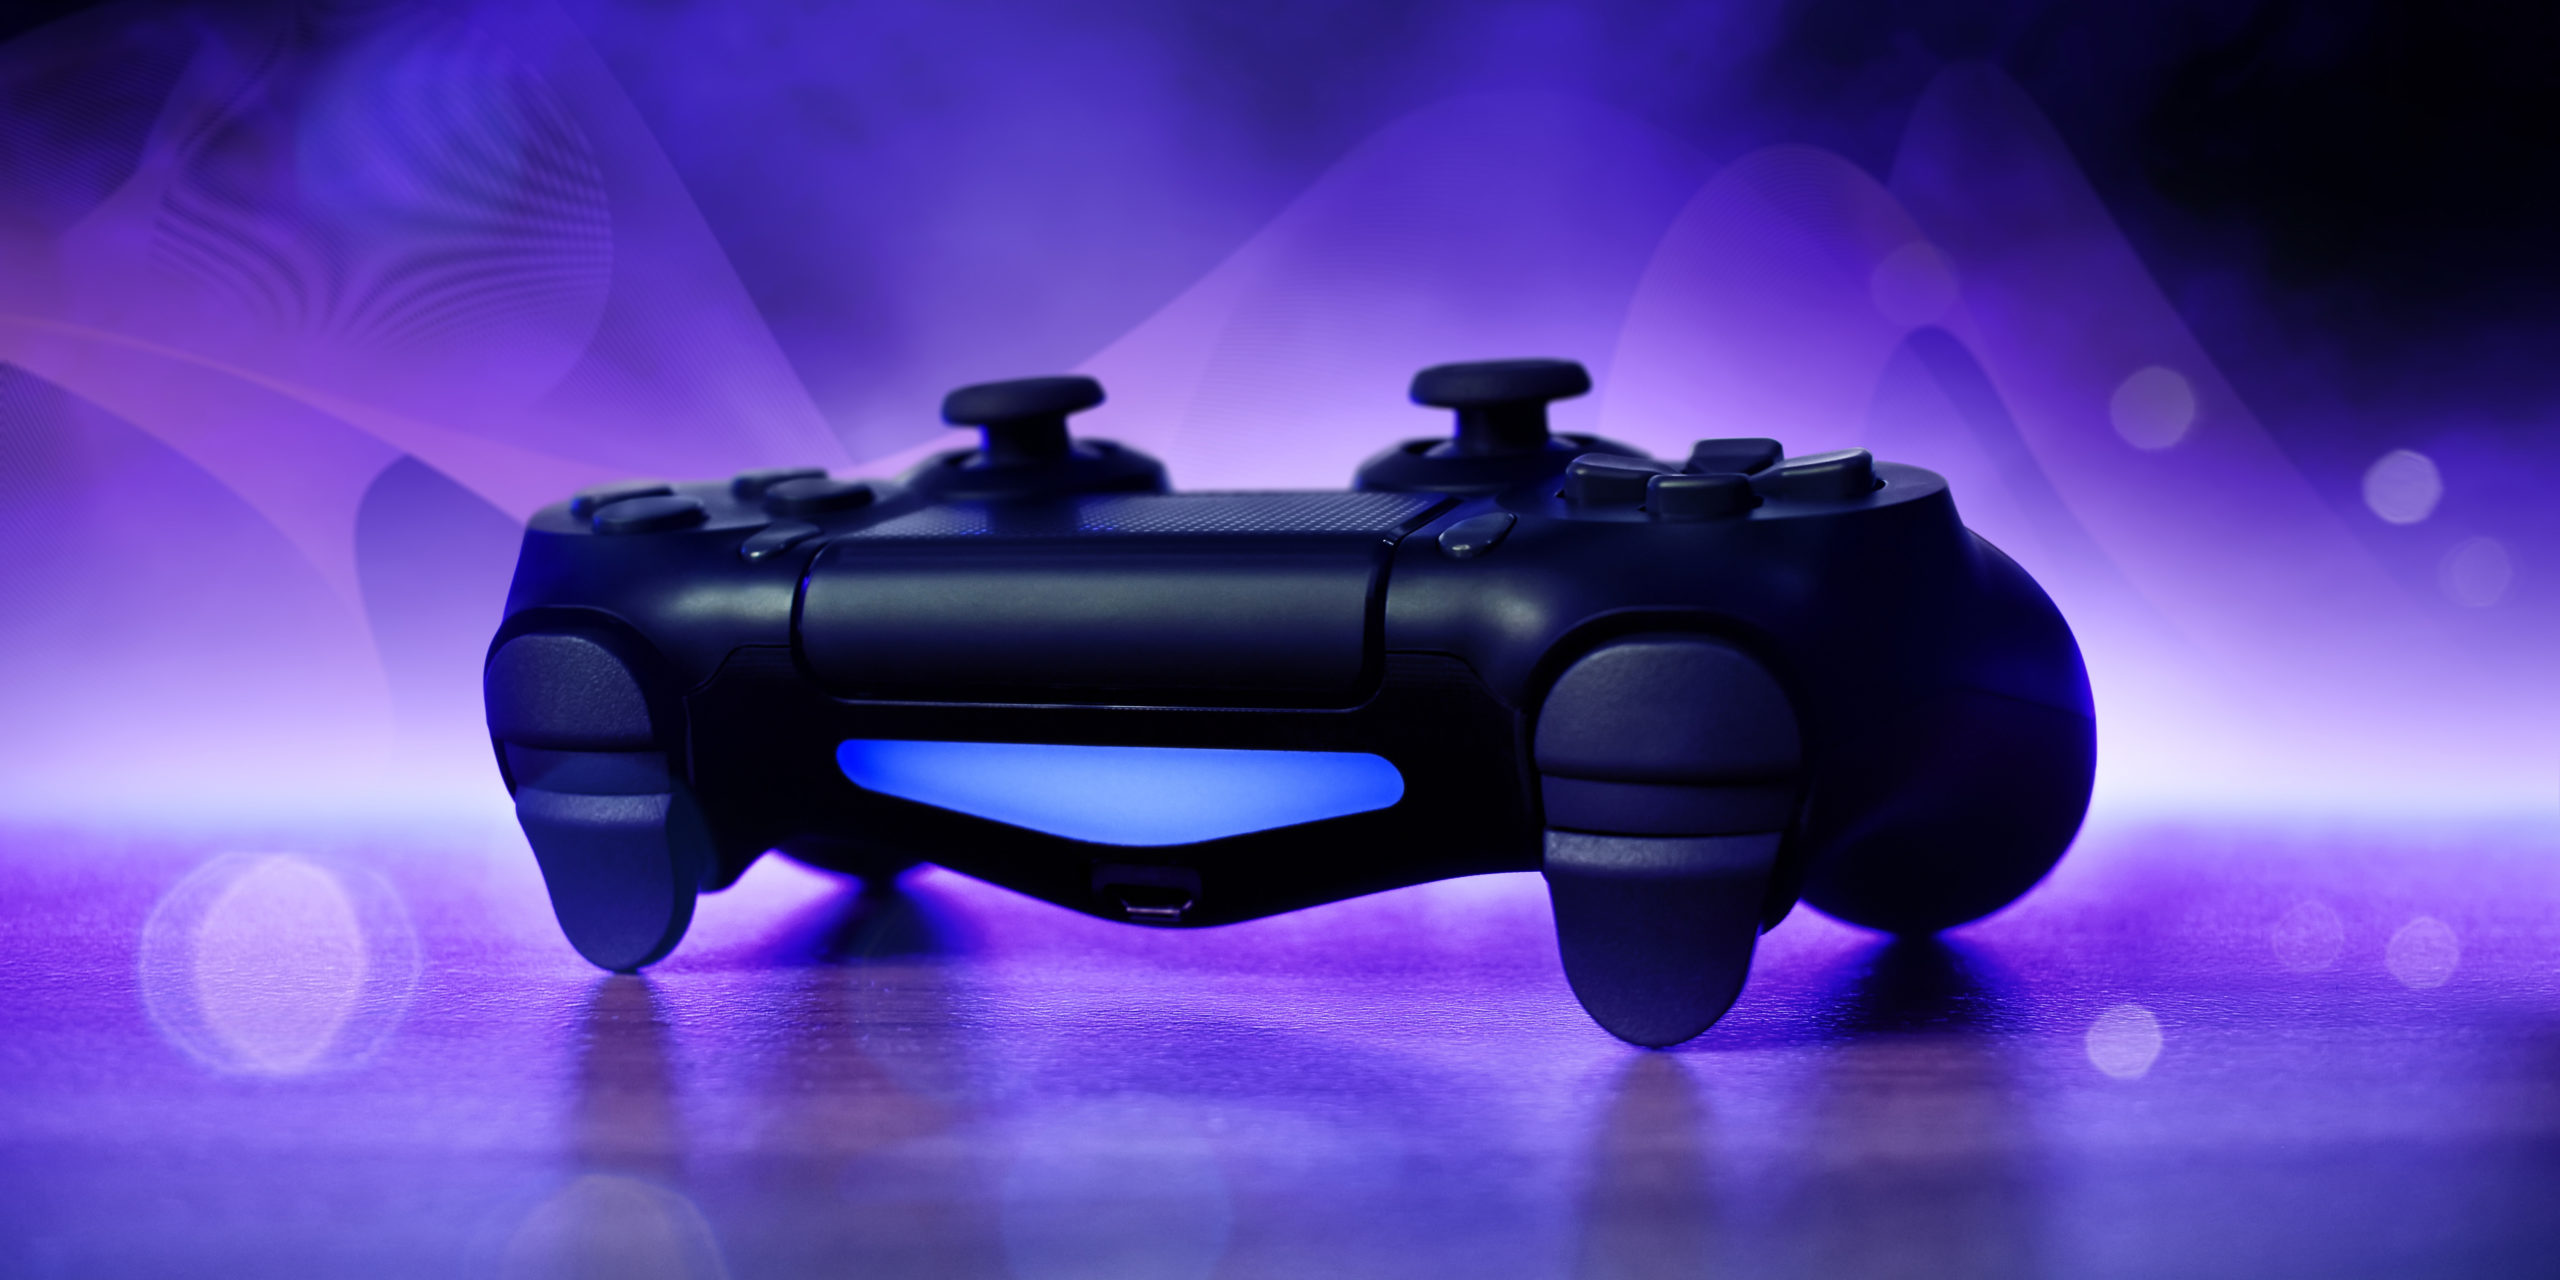 iVIBRATE Turns Your Controller Into a Wireless Vibrator